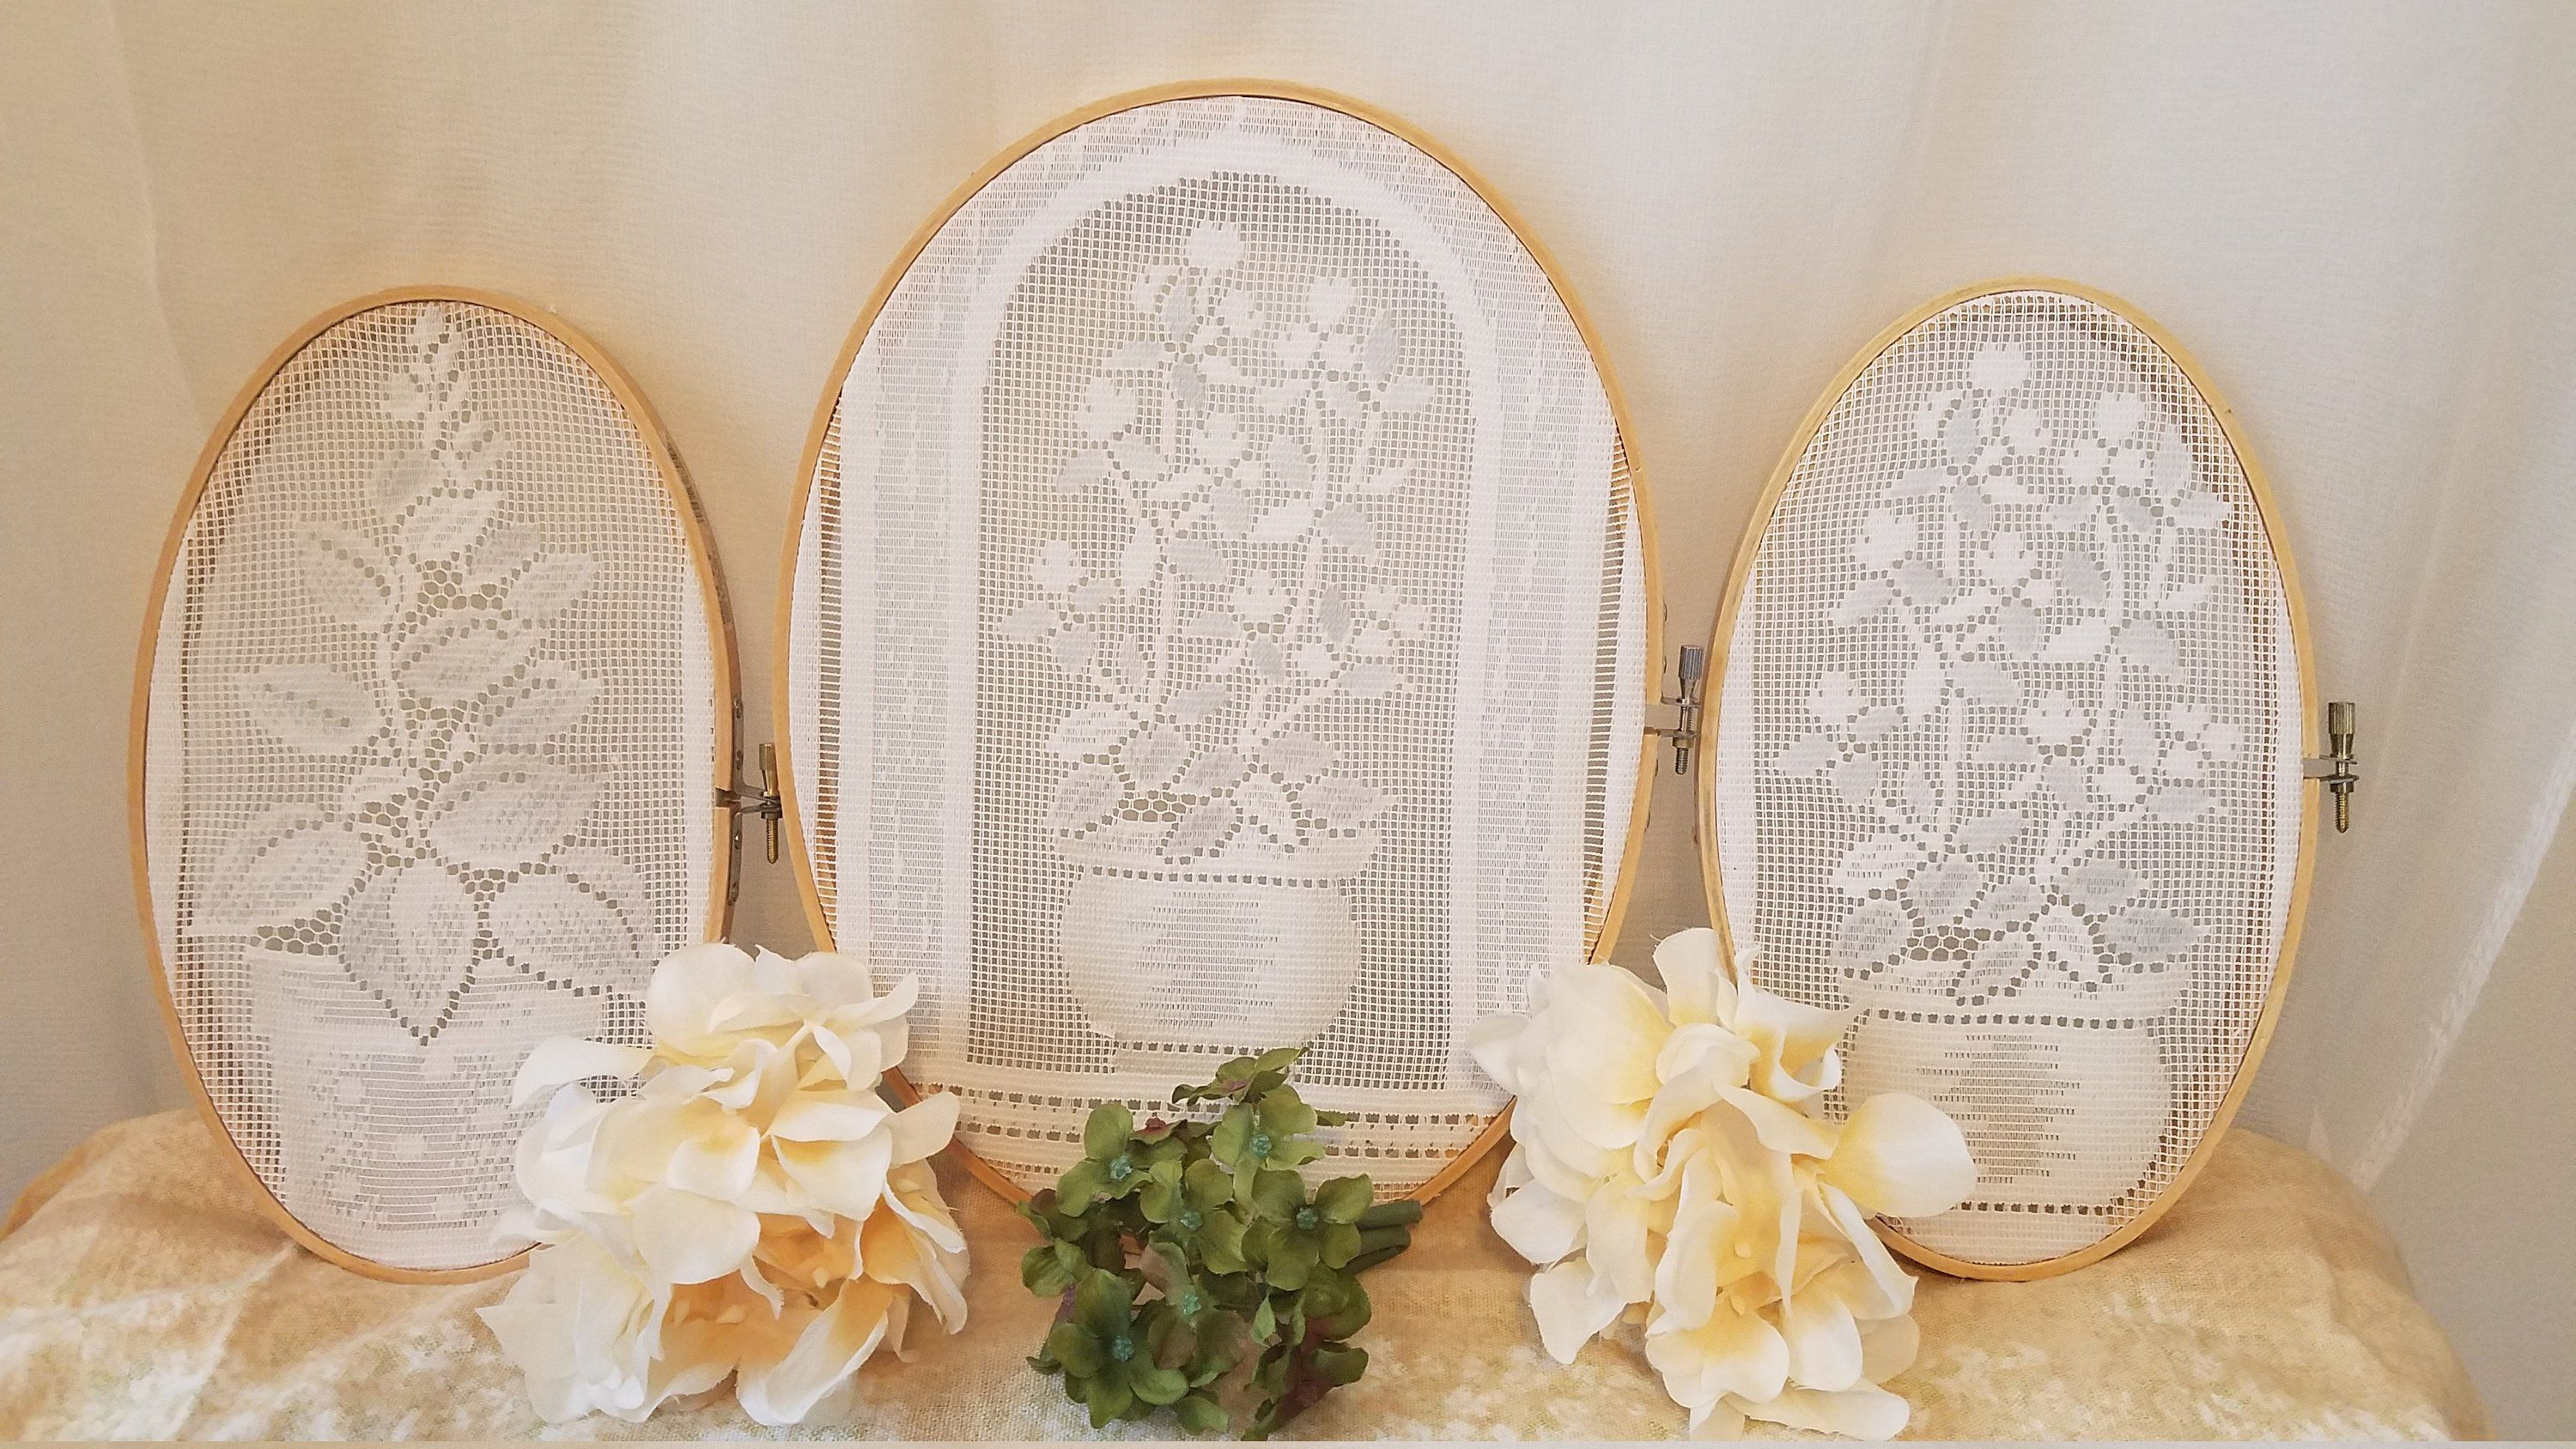 Lace Wall Art Embroidery Hoop 3 Pc Earring Organizer Oval Hanging Storage Trees Embroidery Hoop Wall Embroidery Hoop Wall Art Embroidery Hoop